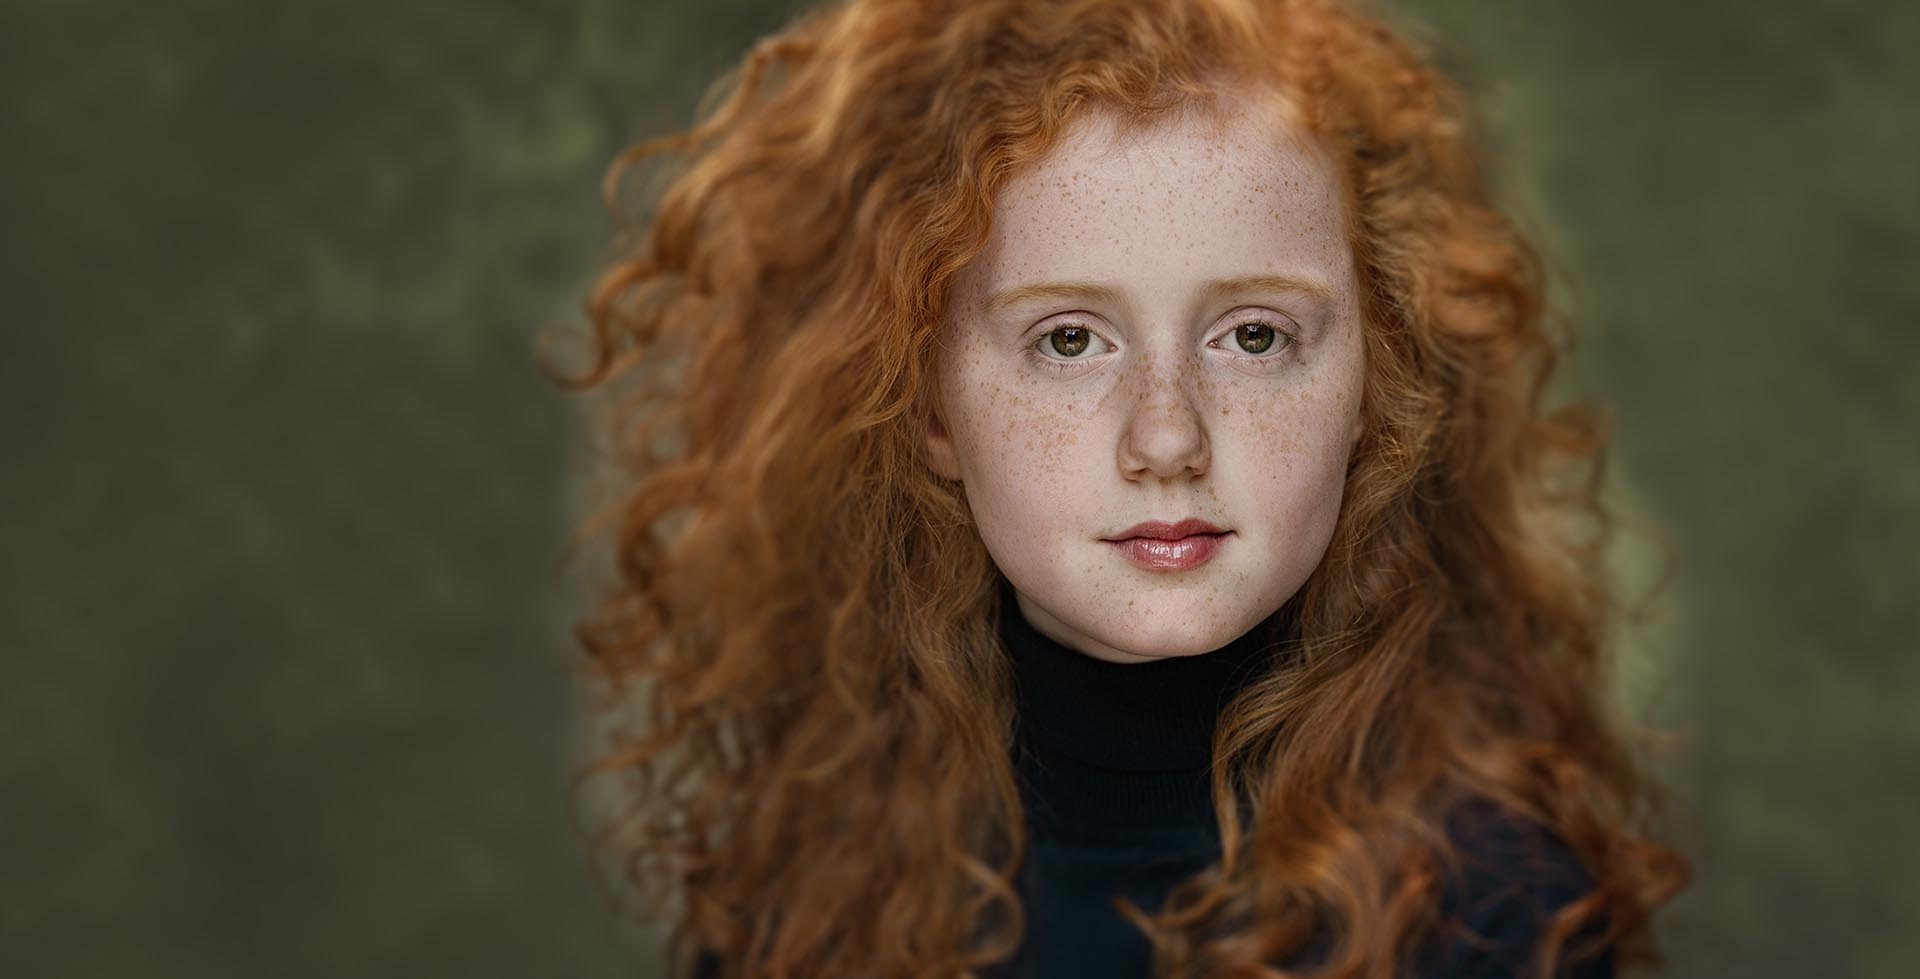 Stunning children's headshots (Young Performer Lottie Cooper)